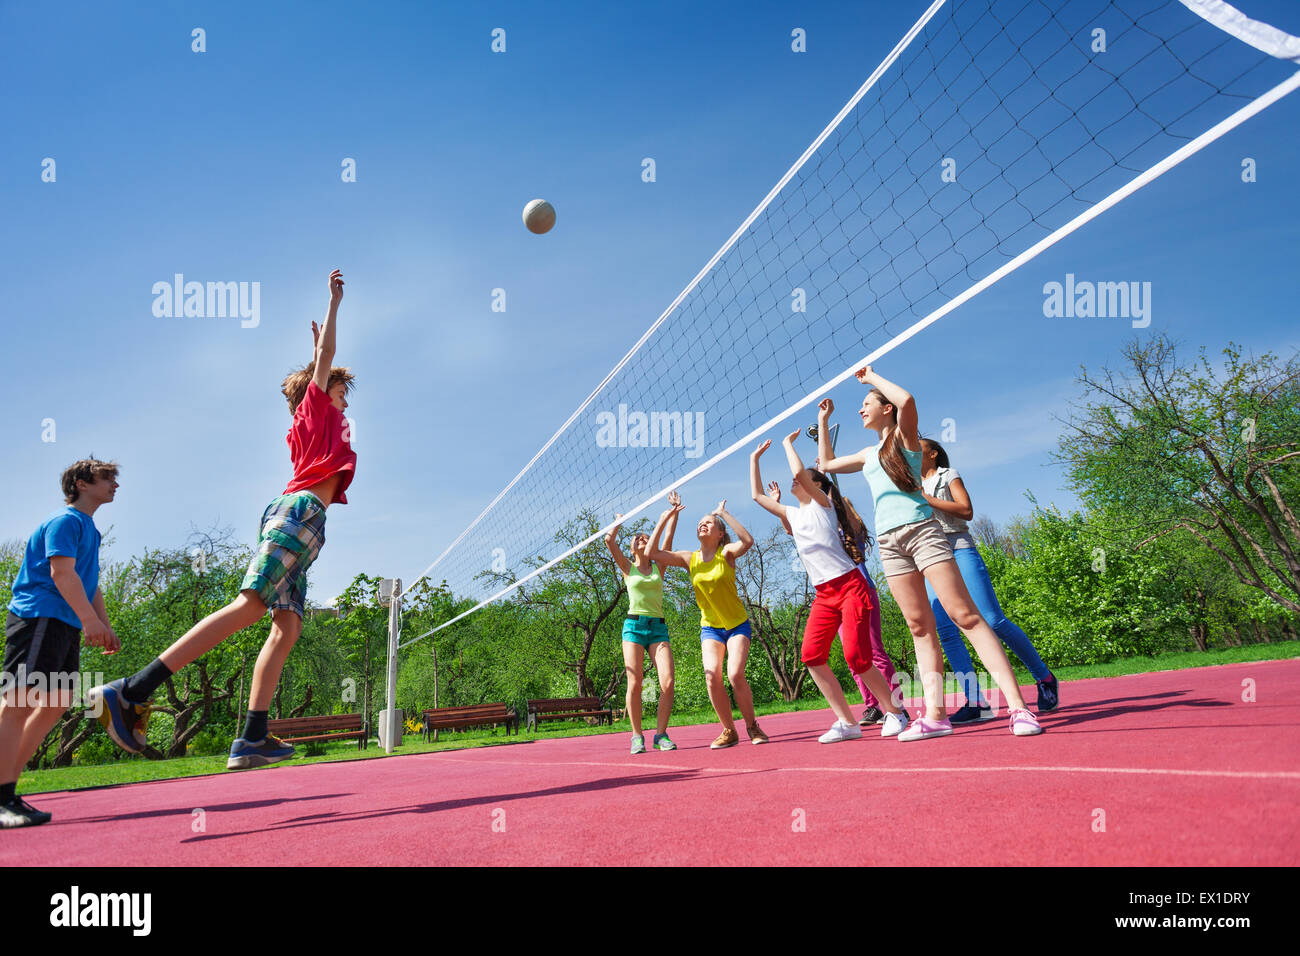 Les adolescents jouer au volley-ball jeu sur terrain Photo Stock